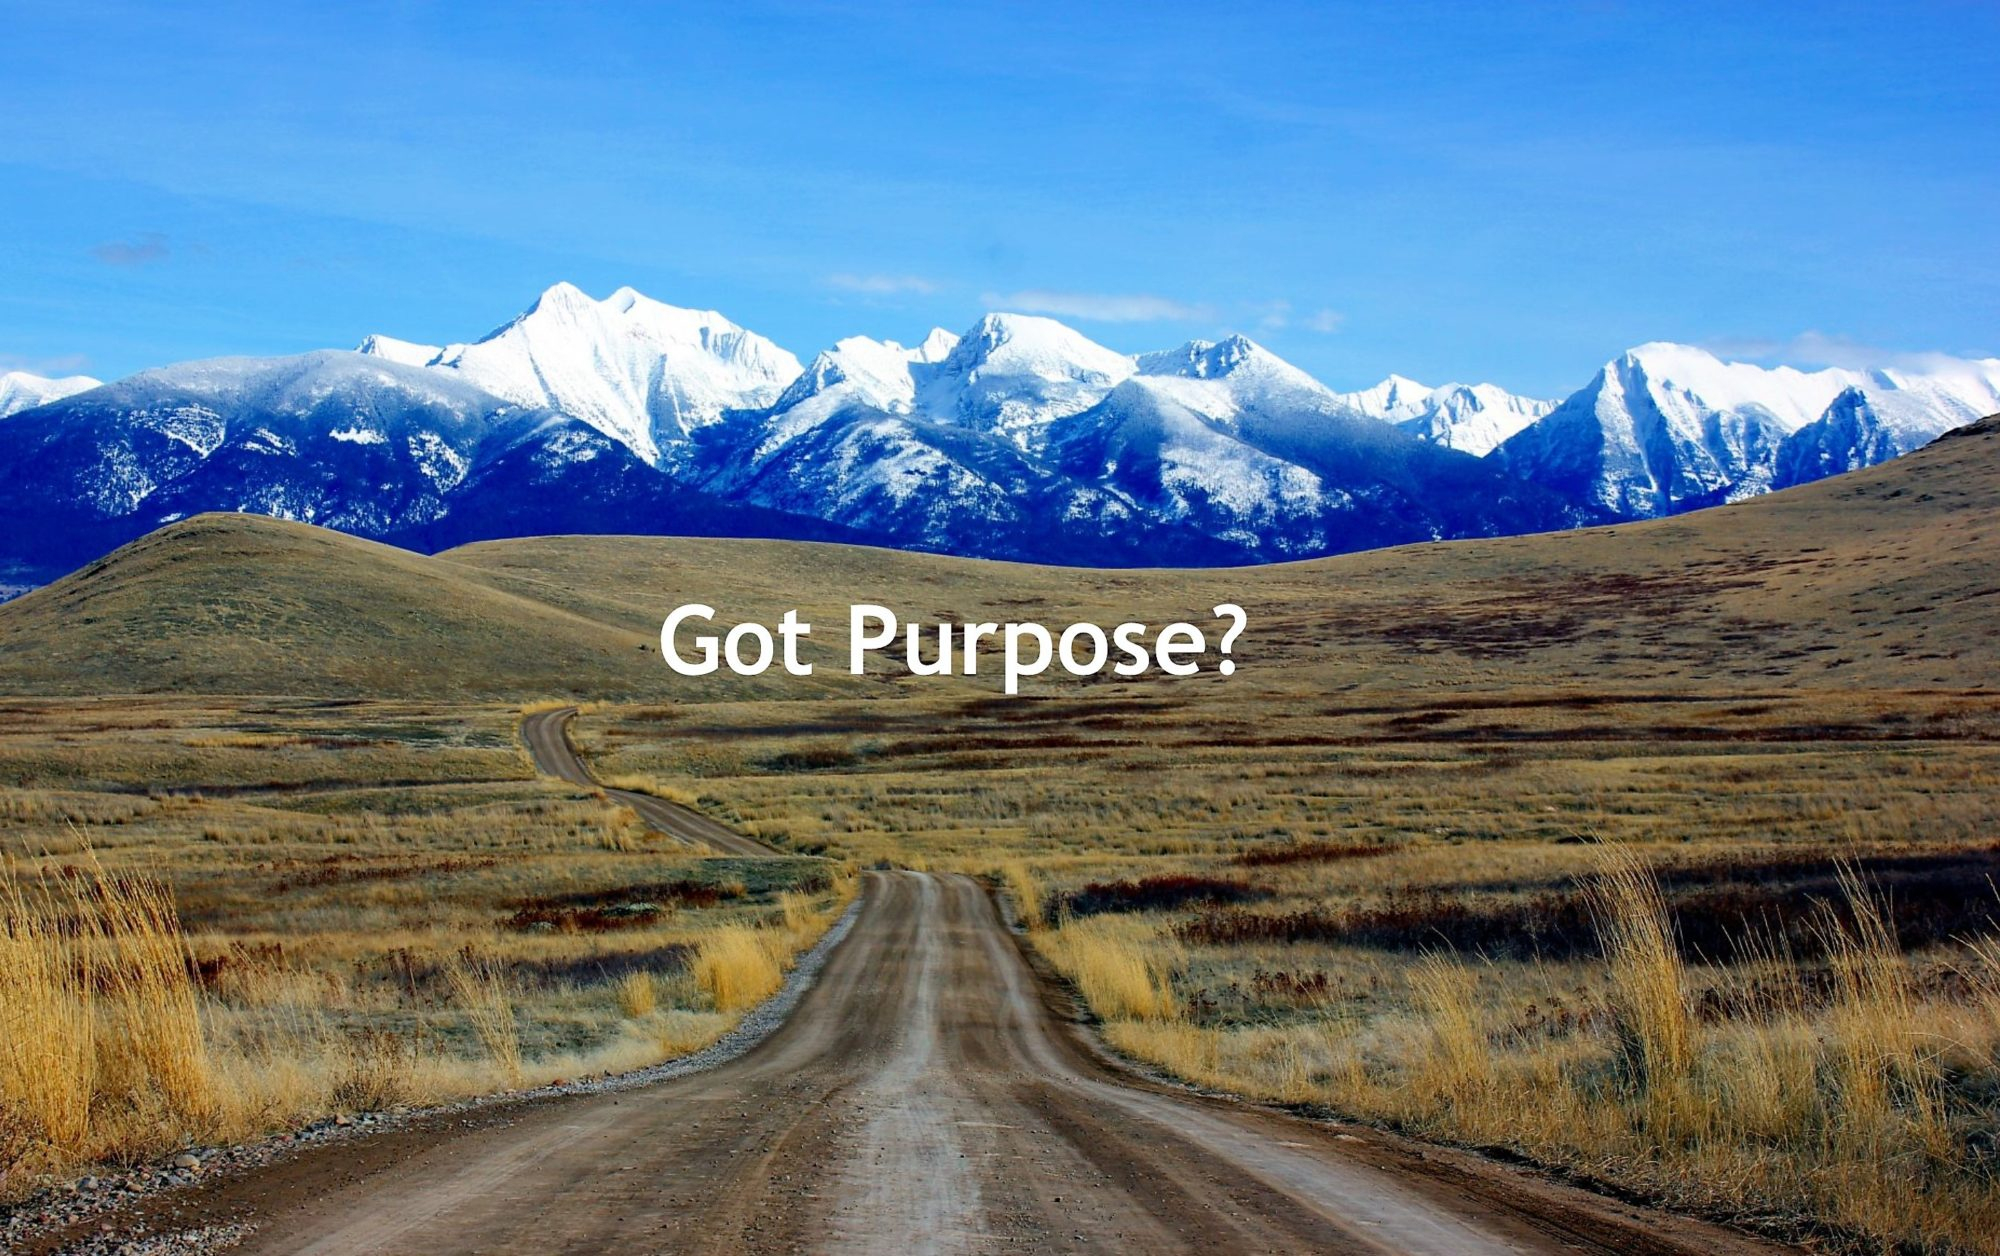 S.h.a.p.e. Test – Helping You Discover God's Purpose In Life - Free Printable Spiritual Gifts Inventory